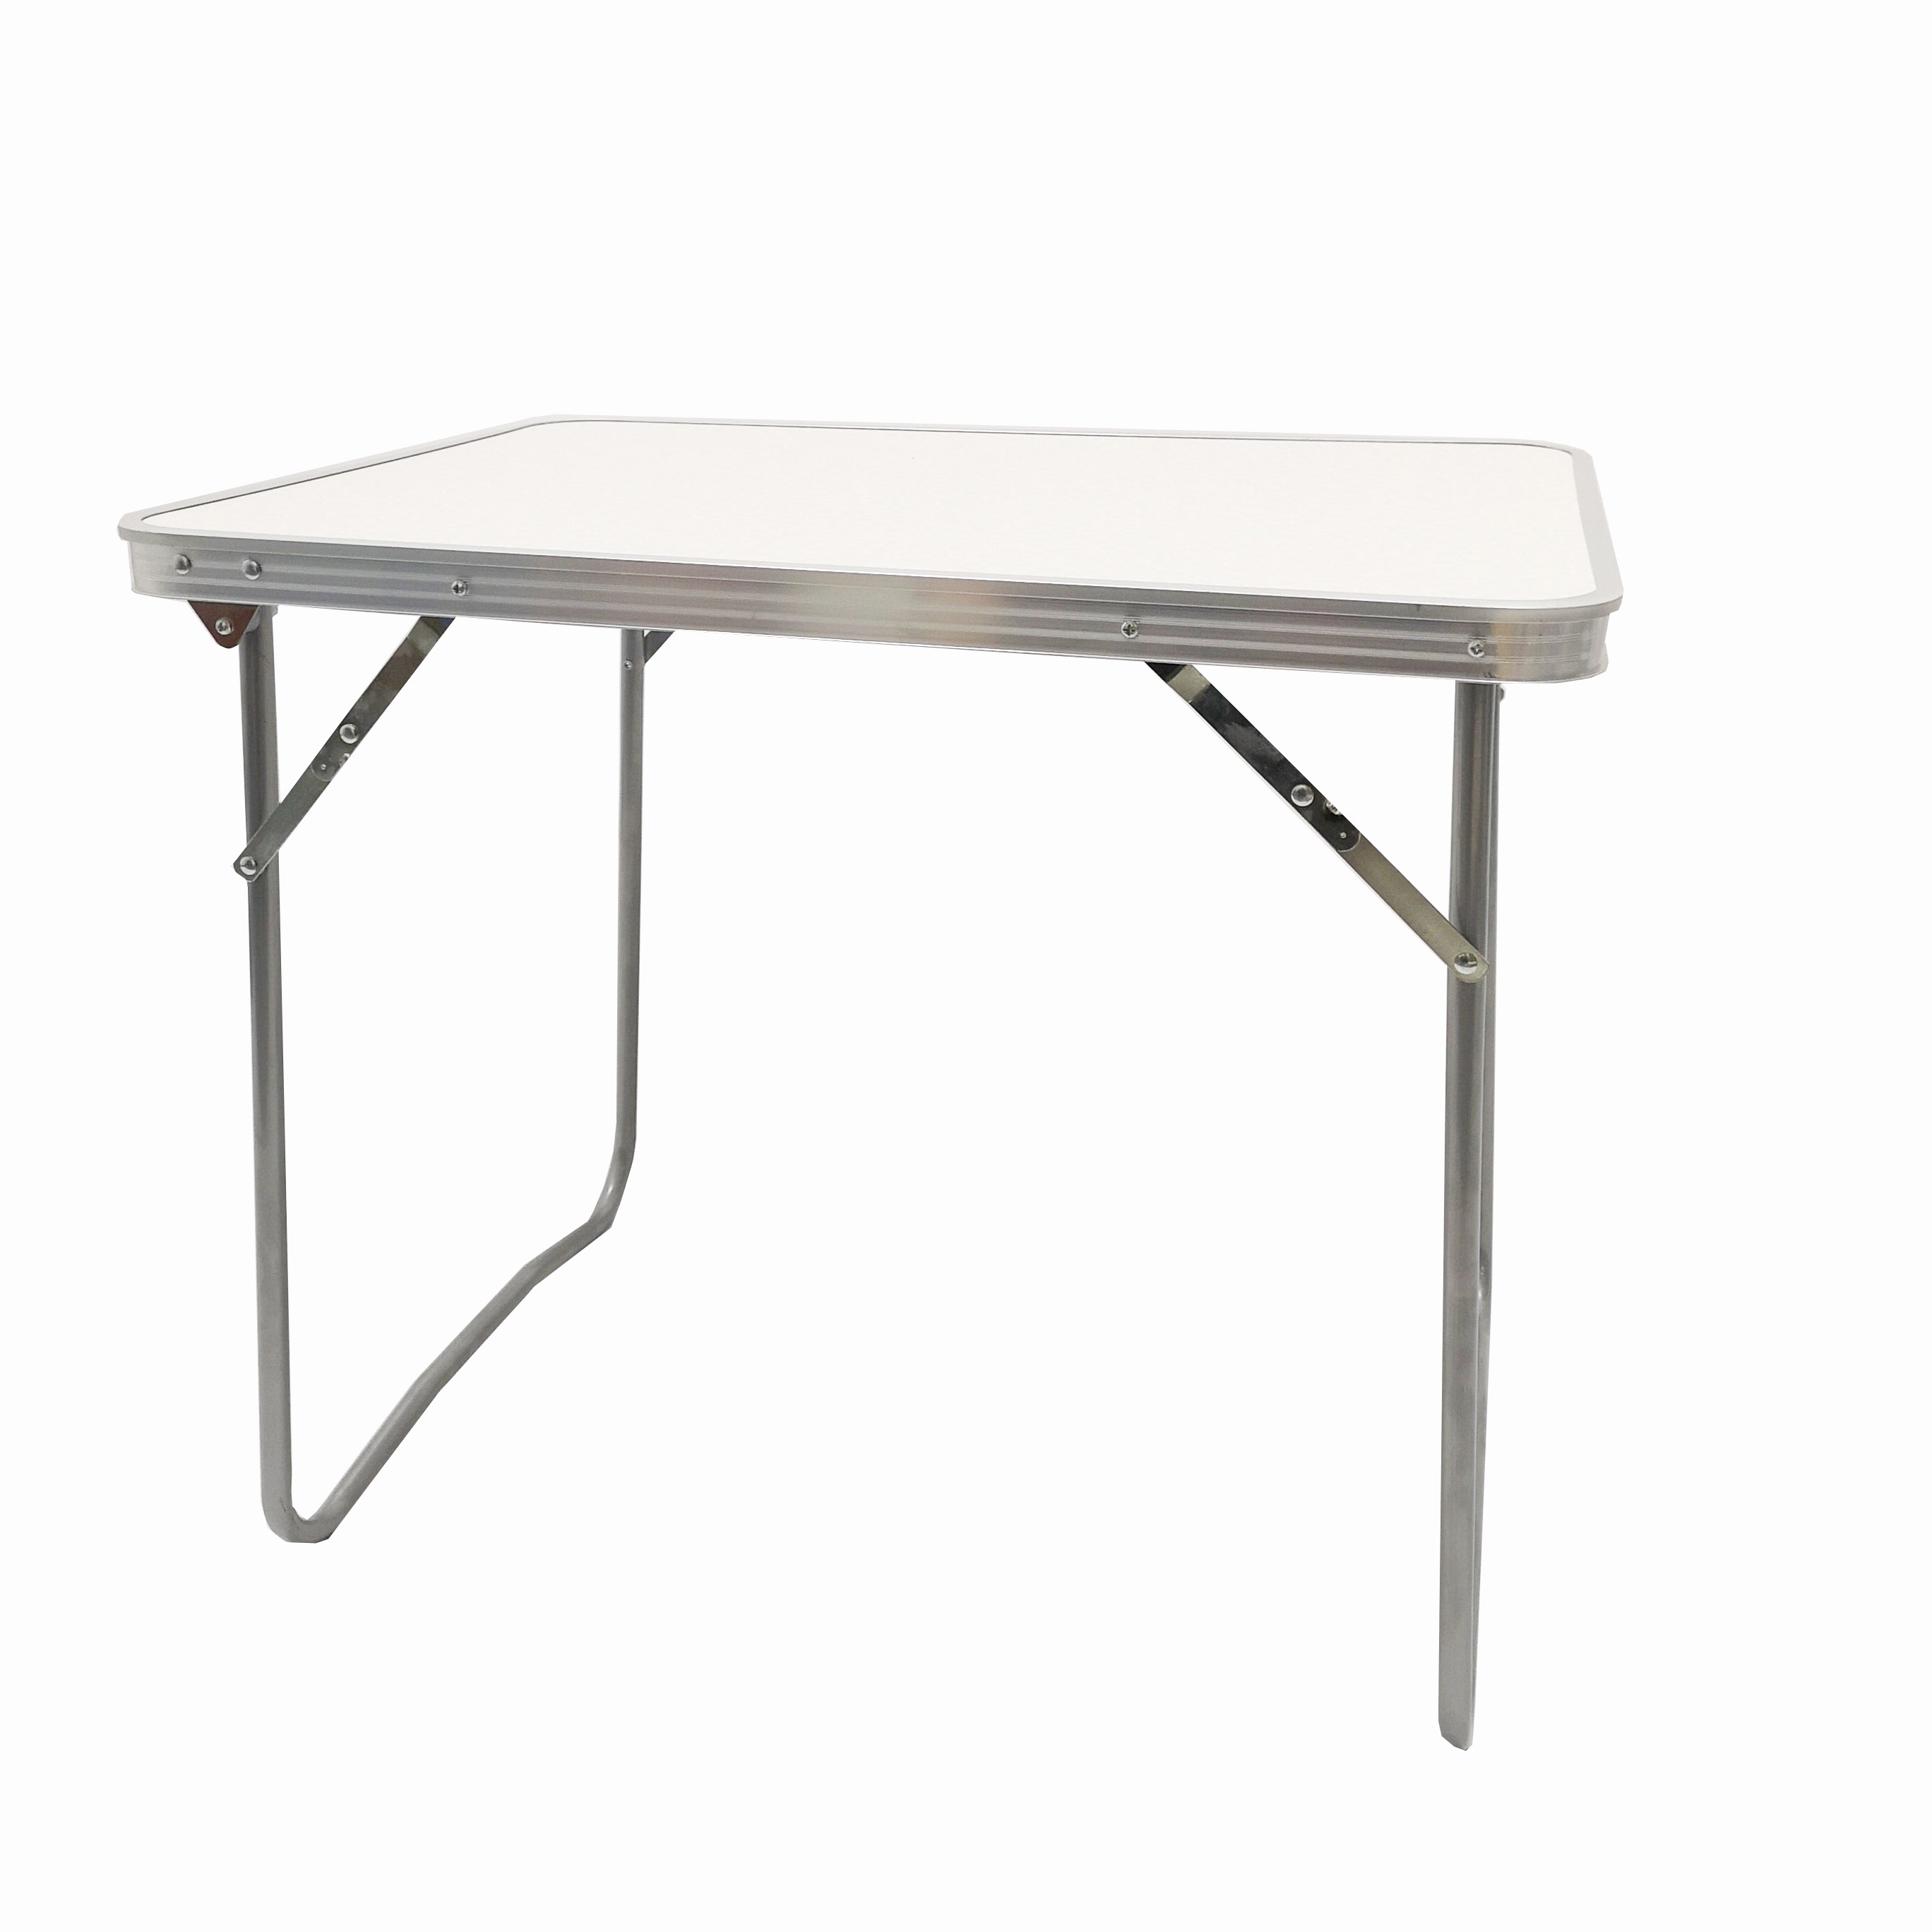 Portable Height Adjustable Aluminum Folding Camping Table